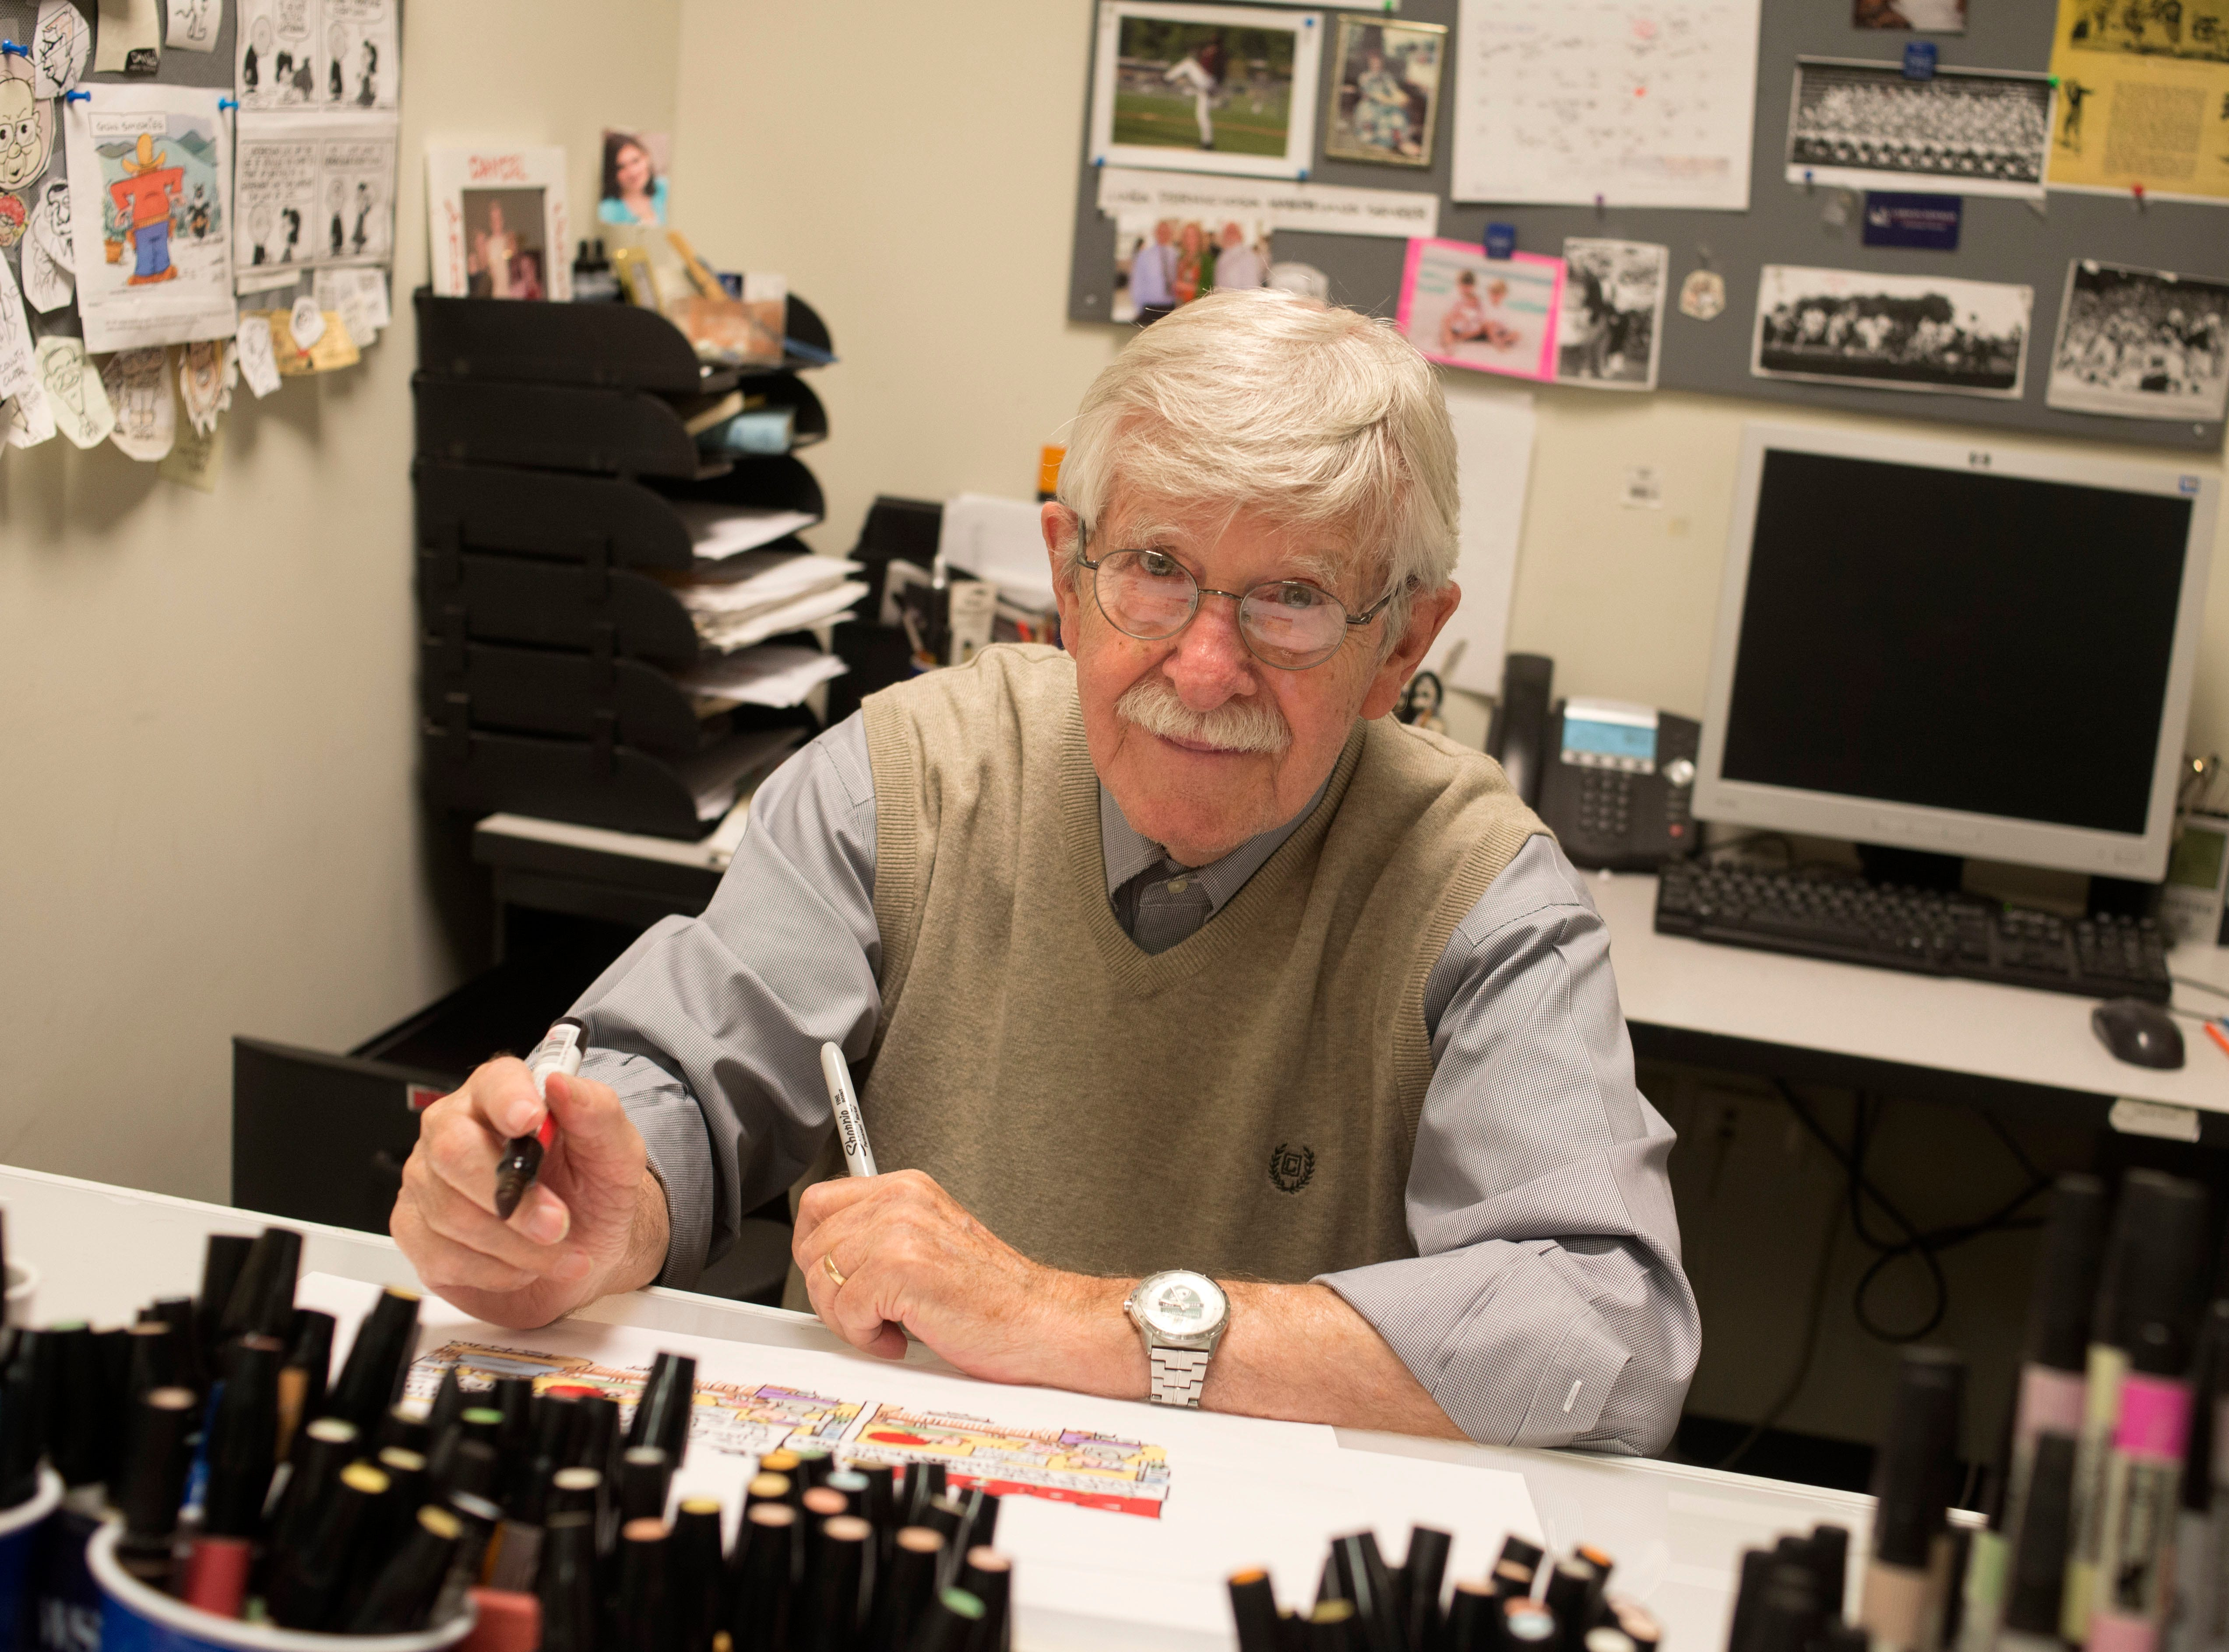 Cartoonist Charlie Daniel is pictured at work Oct. 21 2015, at the News Sentinel. Daniel will bring his pen and take in several Knoxville Symphony Orchestra Young People's Concerts this week.